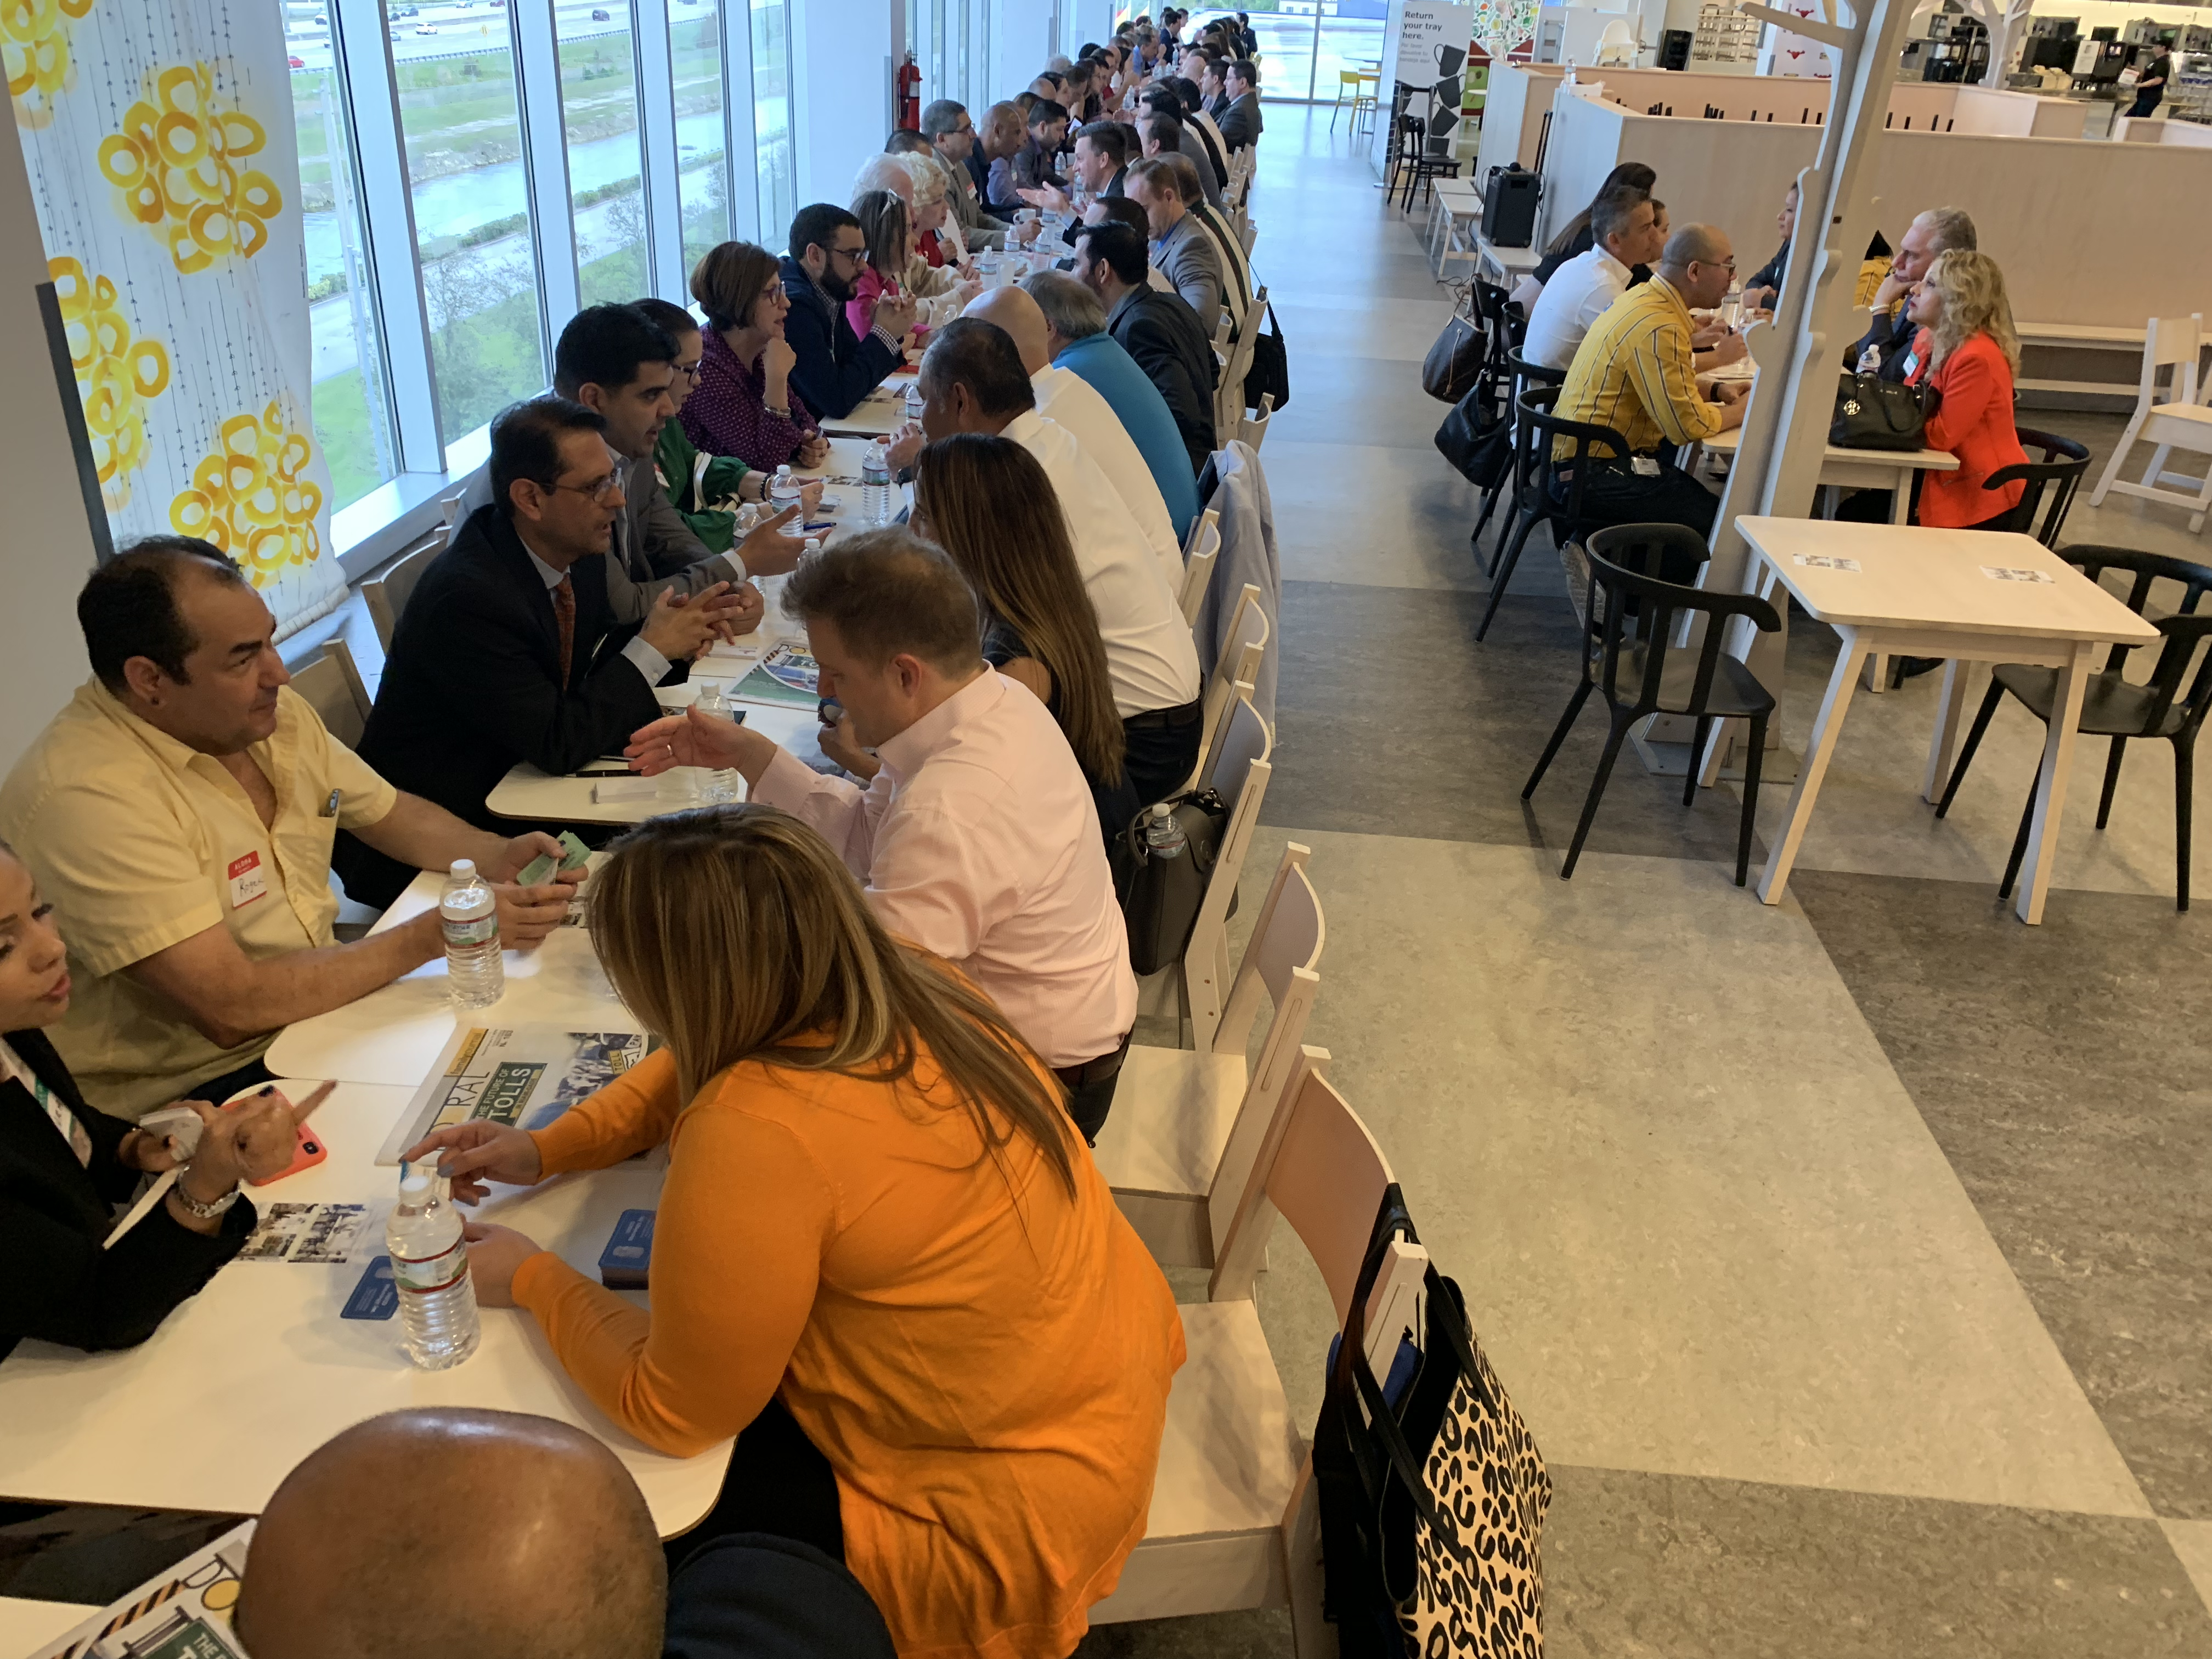 Doral Chamber of Commerce IKEA Speed Networking Event, hundreds of members talking about their business.